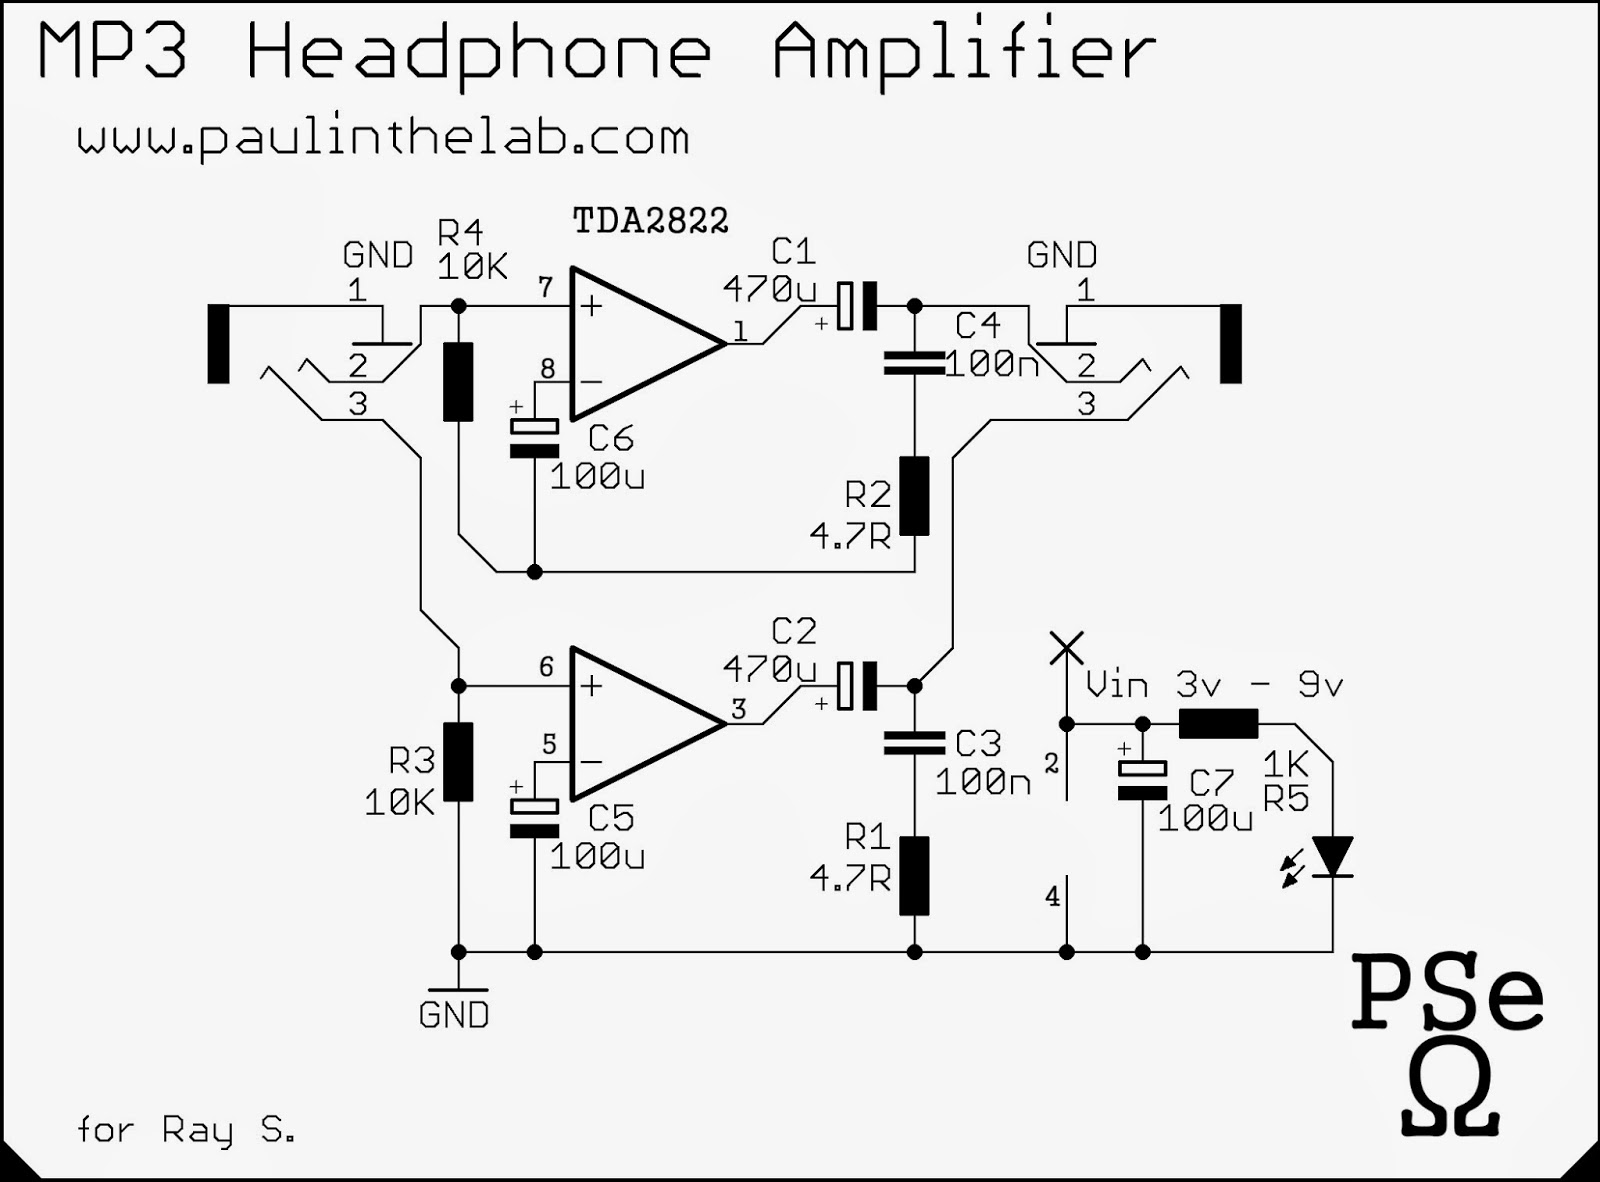 Schematic Diagram Headphone Amplifier Diy Kit Base On Lehmann Amp Circuit Paul In The Lab Mp3 Ipod Tda2822m Stripboard